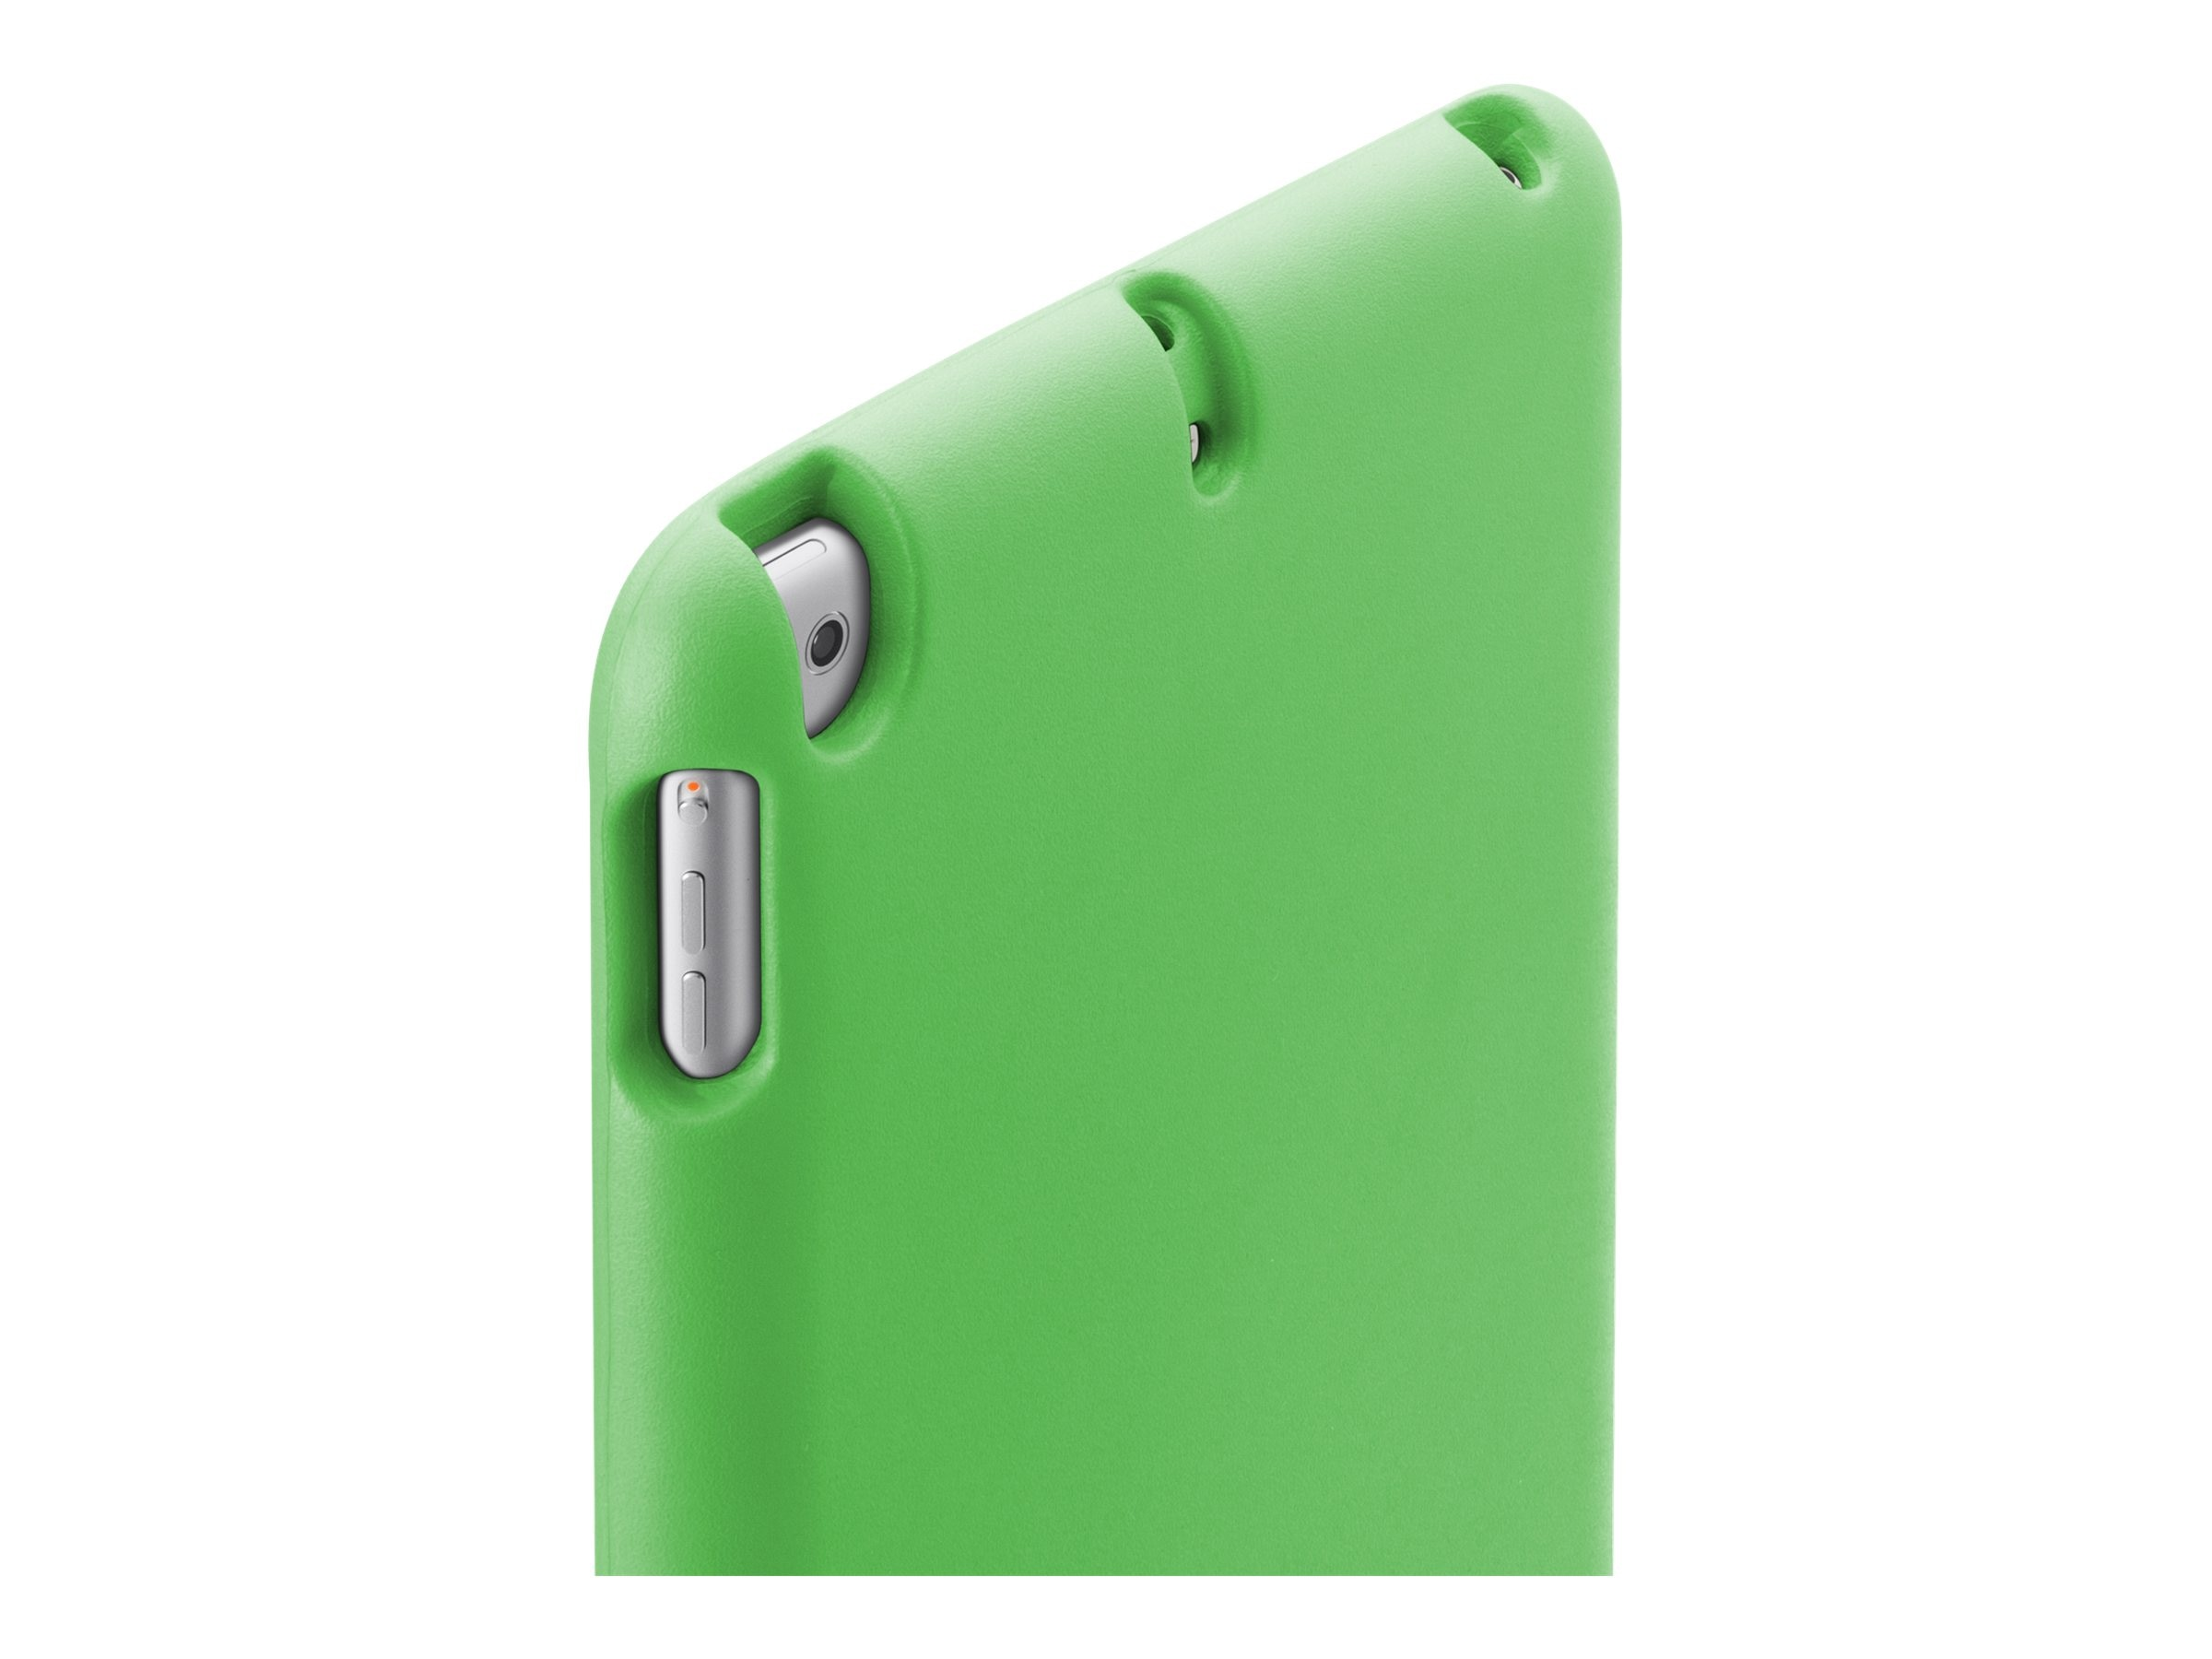 Belkin Air Protect Case for iPad Air, Green, B2A068-C01, 16654623, Carrying Cases - Tablets & eReaders